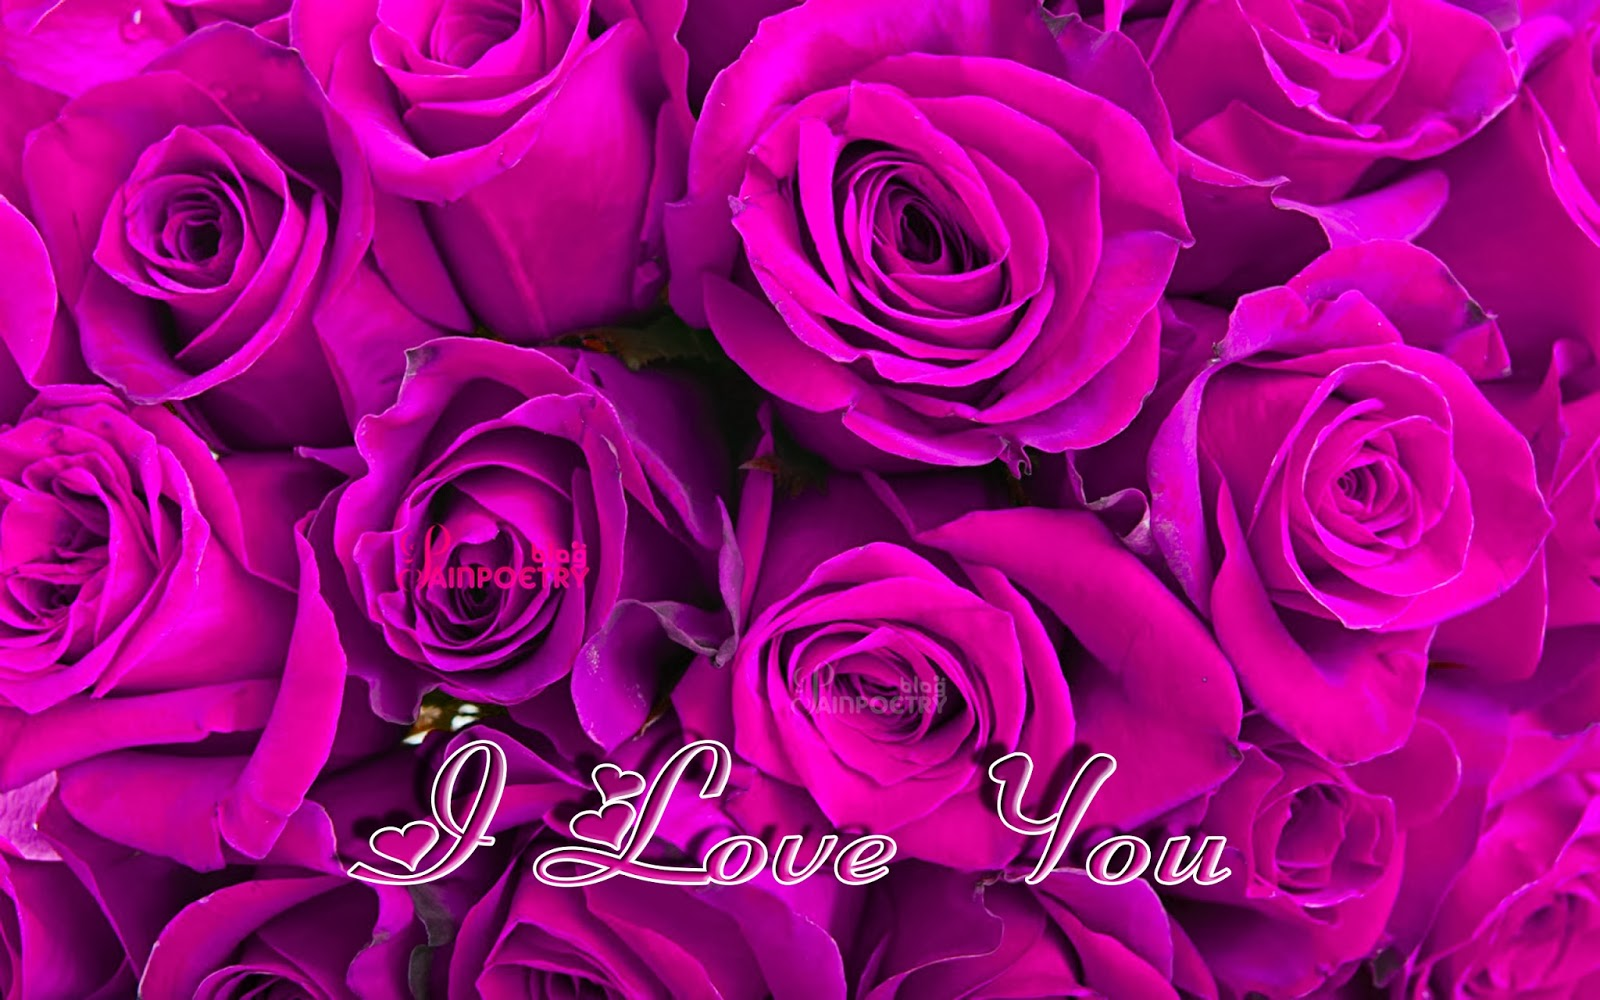 Love-Wallpaper-With-Lot-Of-Flowers-Image-Wide-HD